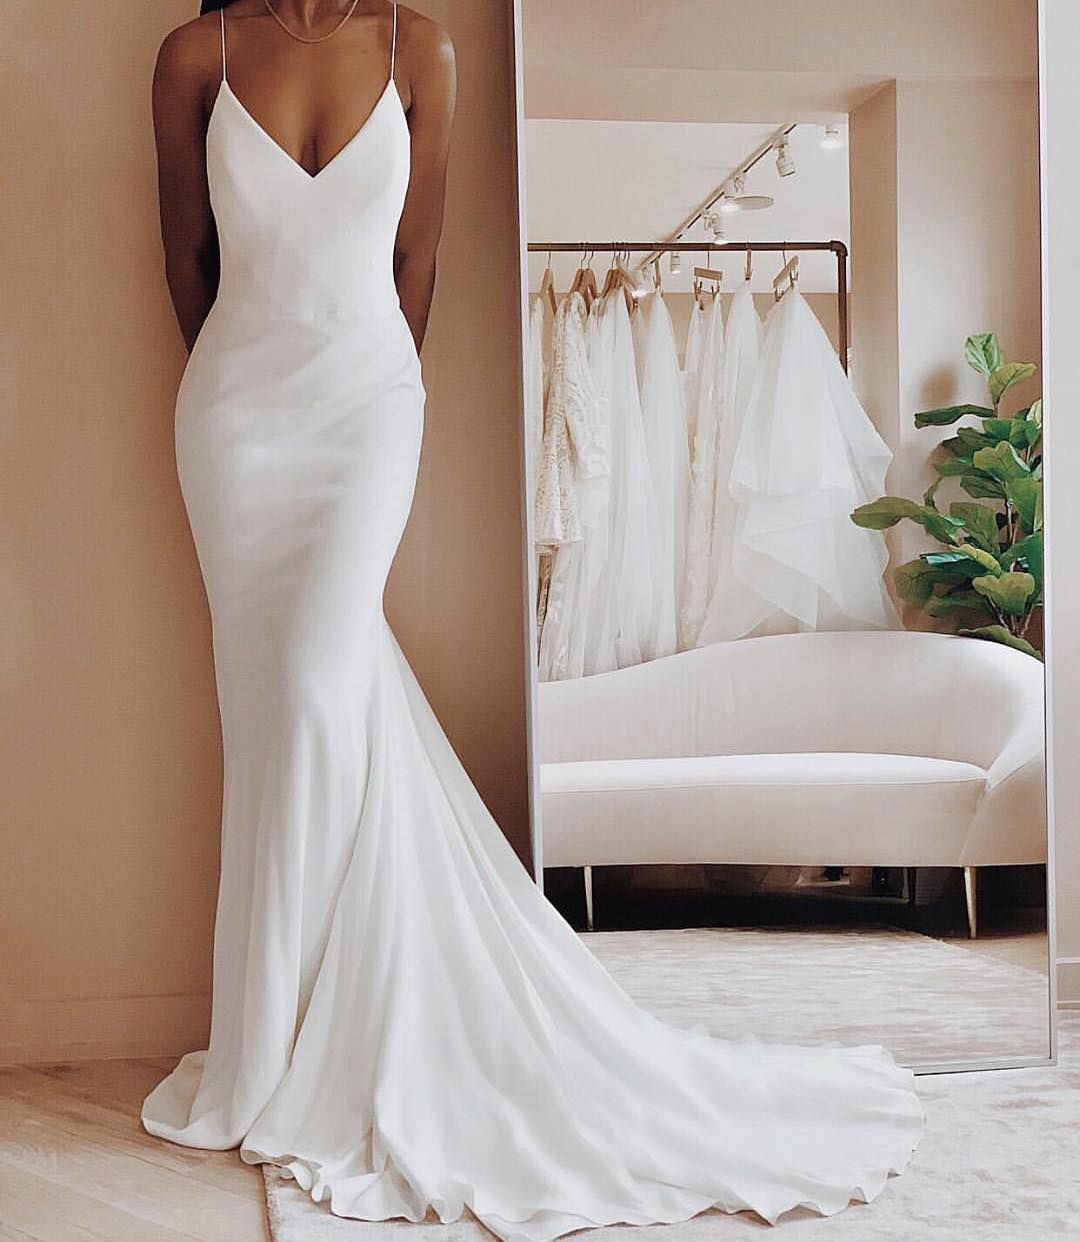 44 Simple Wedding Dresses On Your Big Day